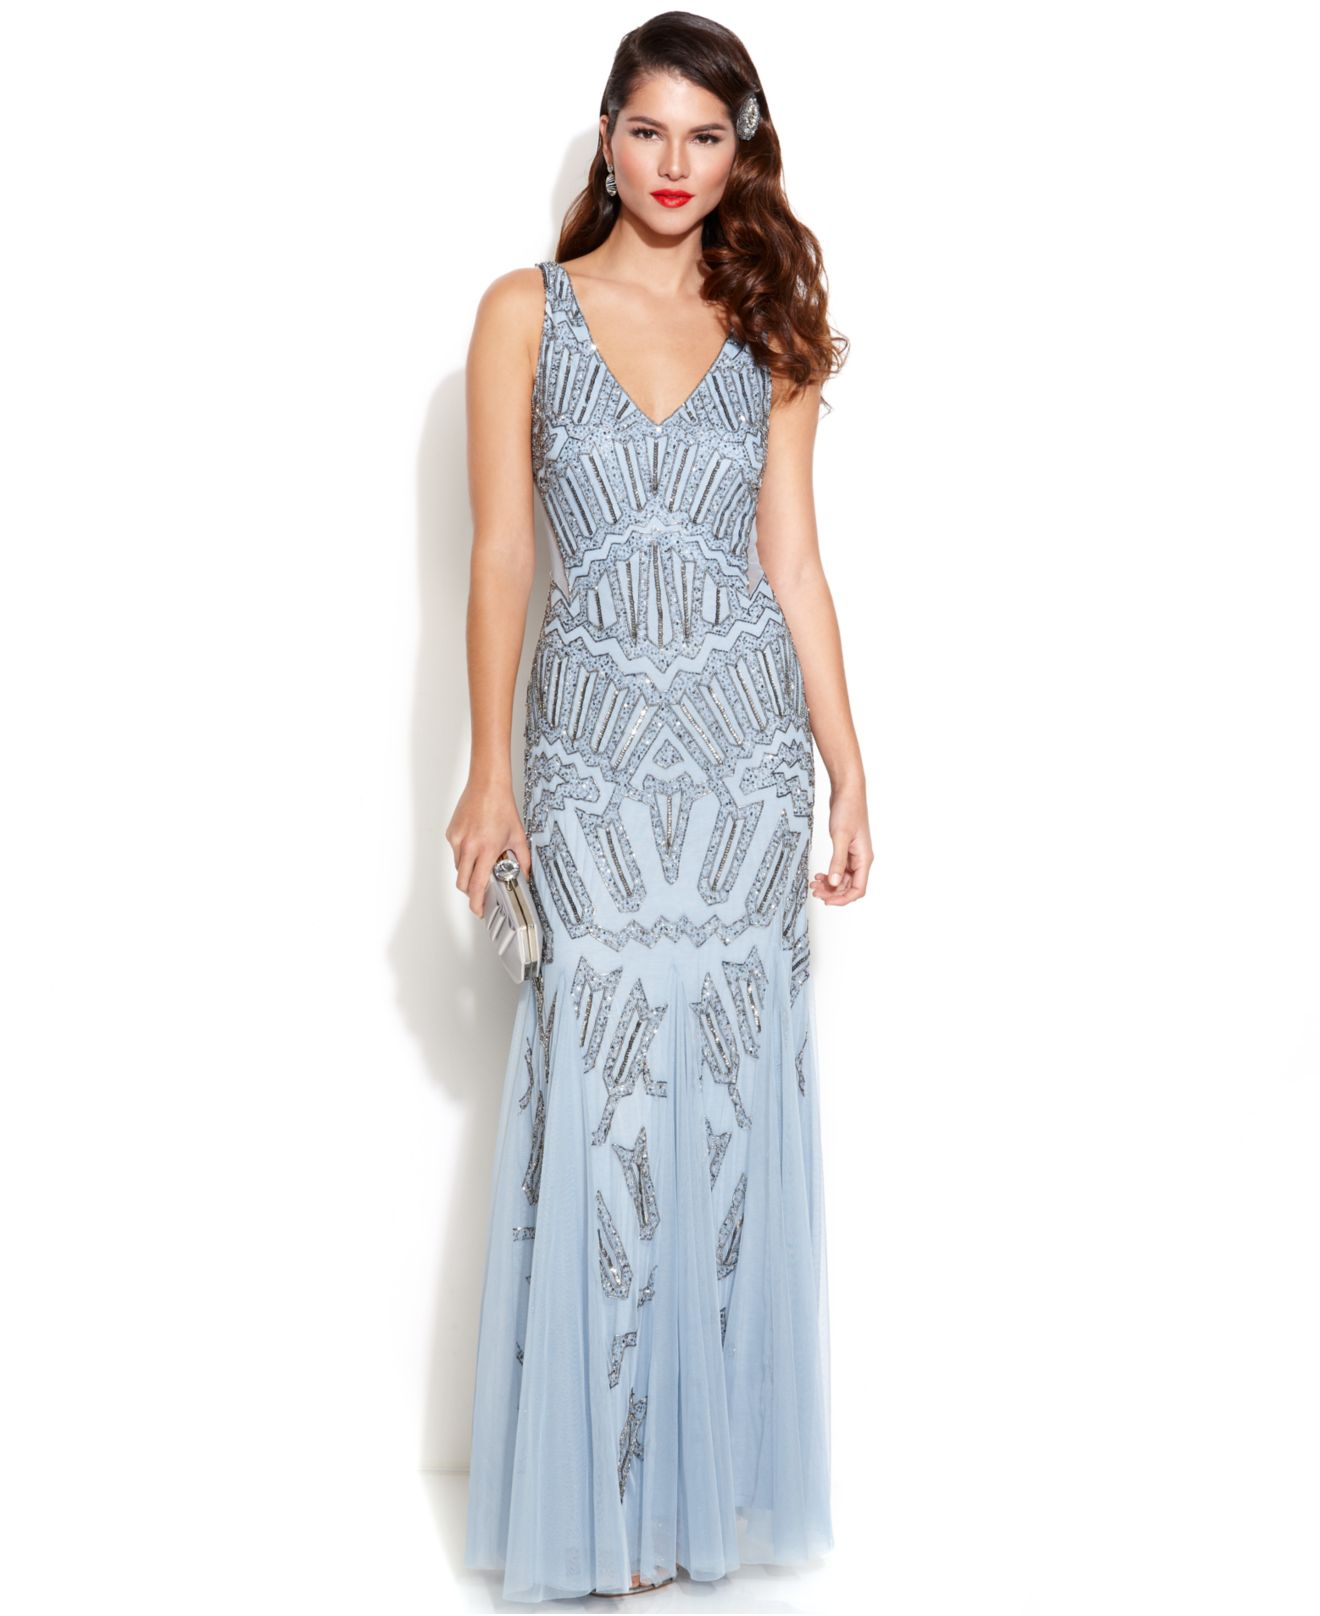 Lyst  Adrianna Papell Sleeveless Beaded Mermaid Gown in Blue